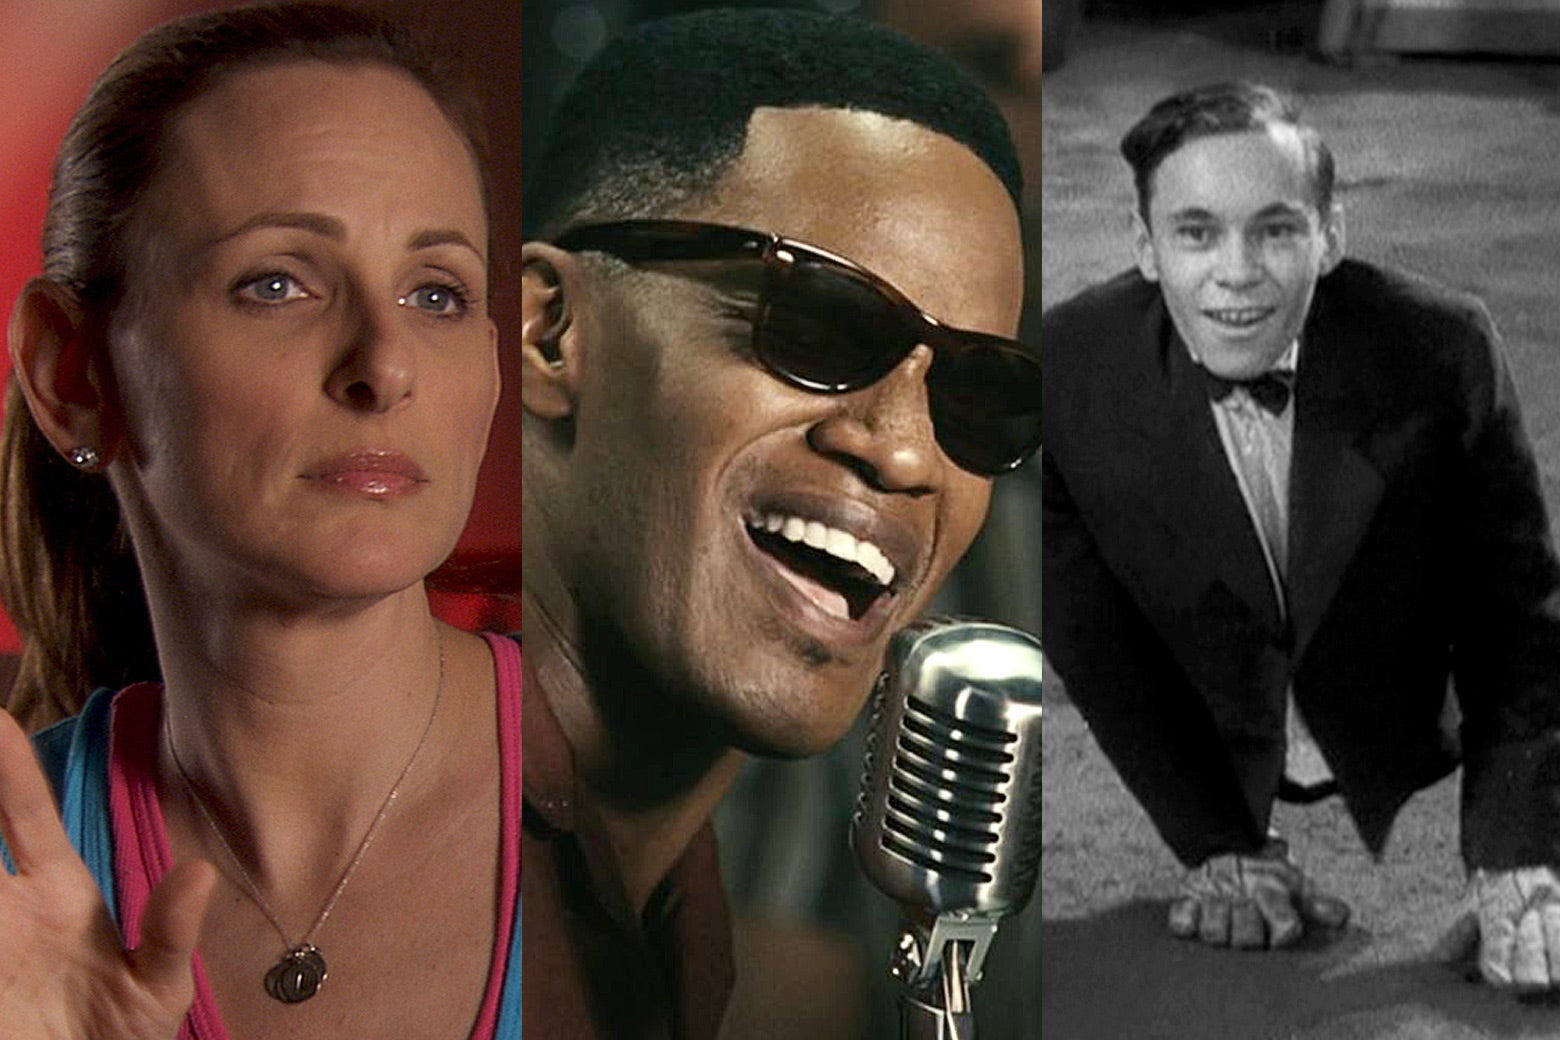 Marlee Matlin in CinemAbility, Jamie Foxx in Ray, and Johnny Eck in Freaks.